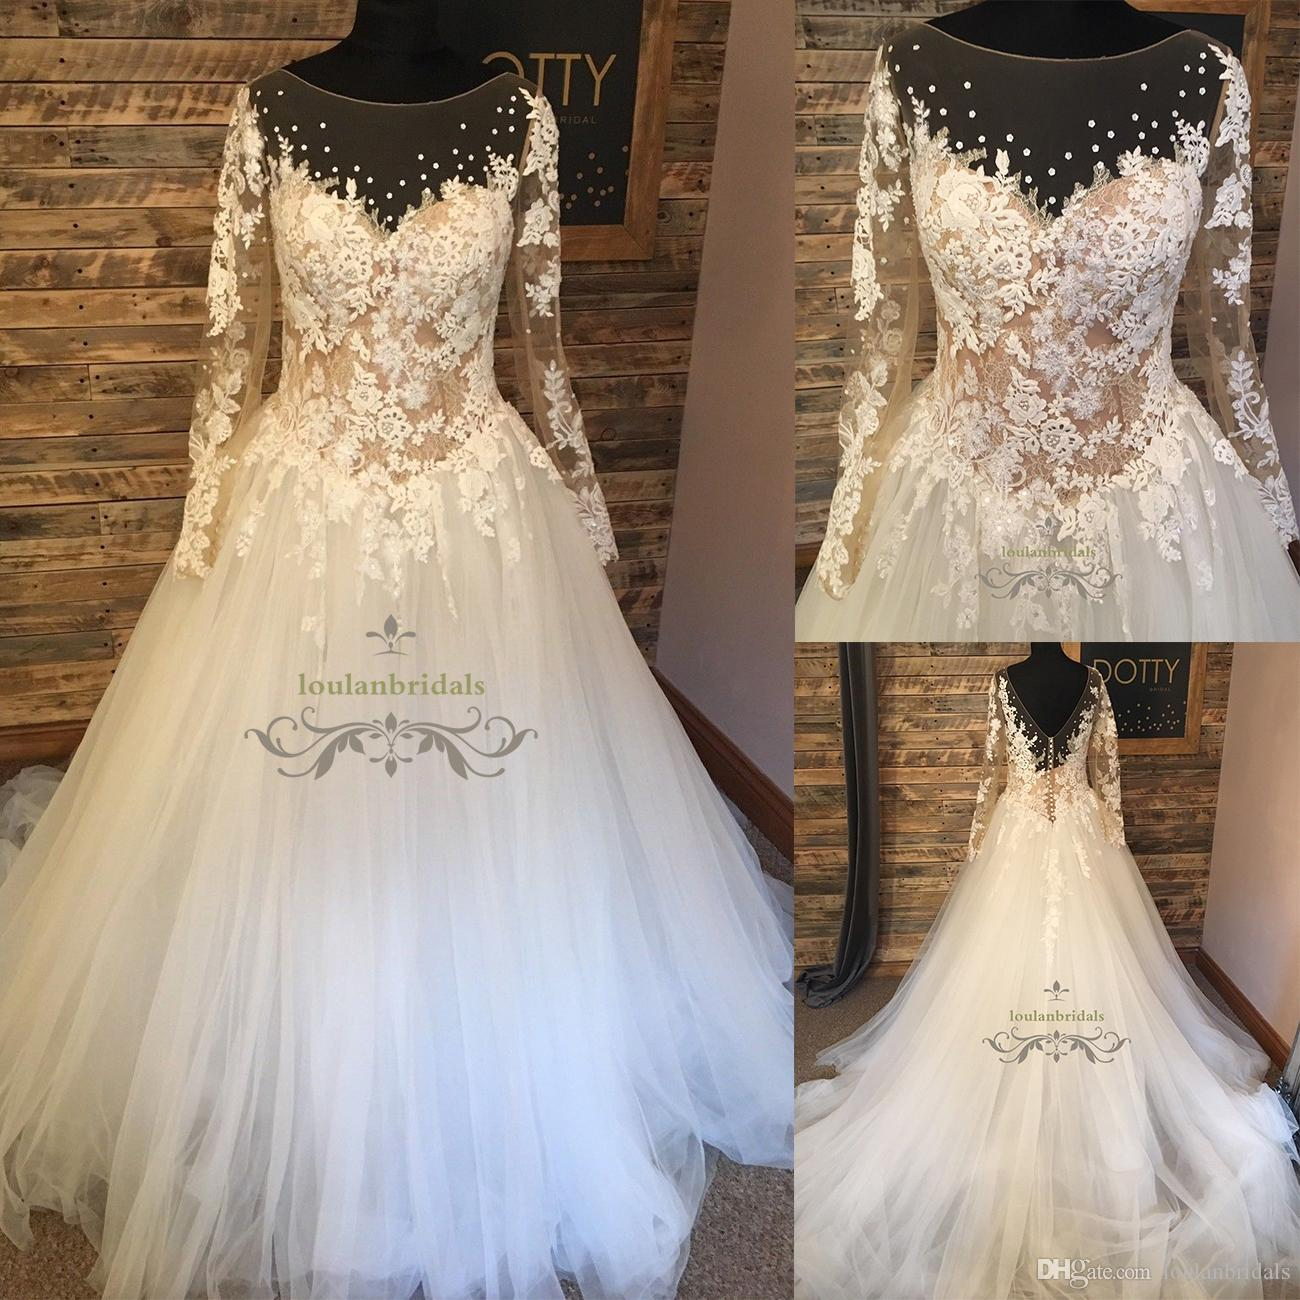 Lace And Tulle Princess Style Long Sleeve Wedding Dress Illusion Boat Neckline Bridal Gowns Ball Gownduchess Plus Size Gown Dresses: Wedding Dress Sleeves Princess Styles At Reisefeber.org